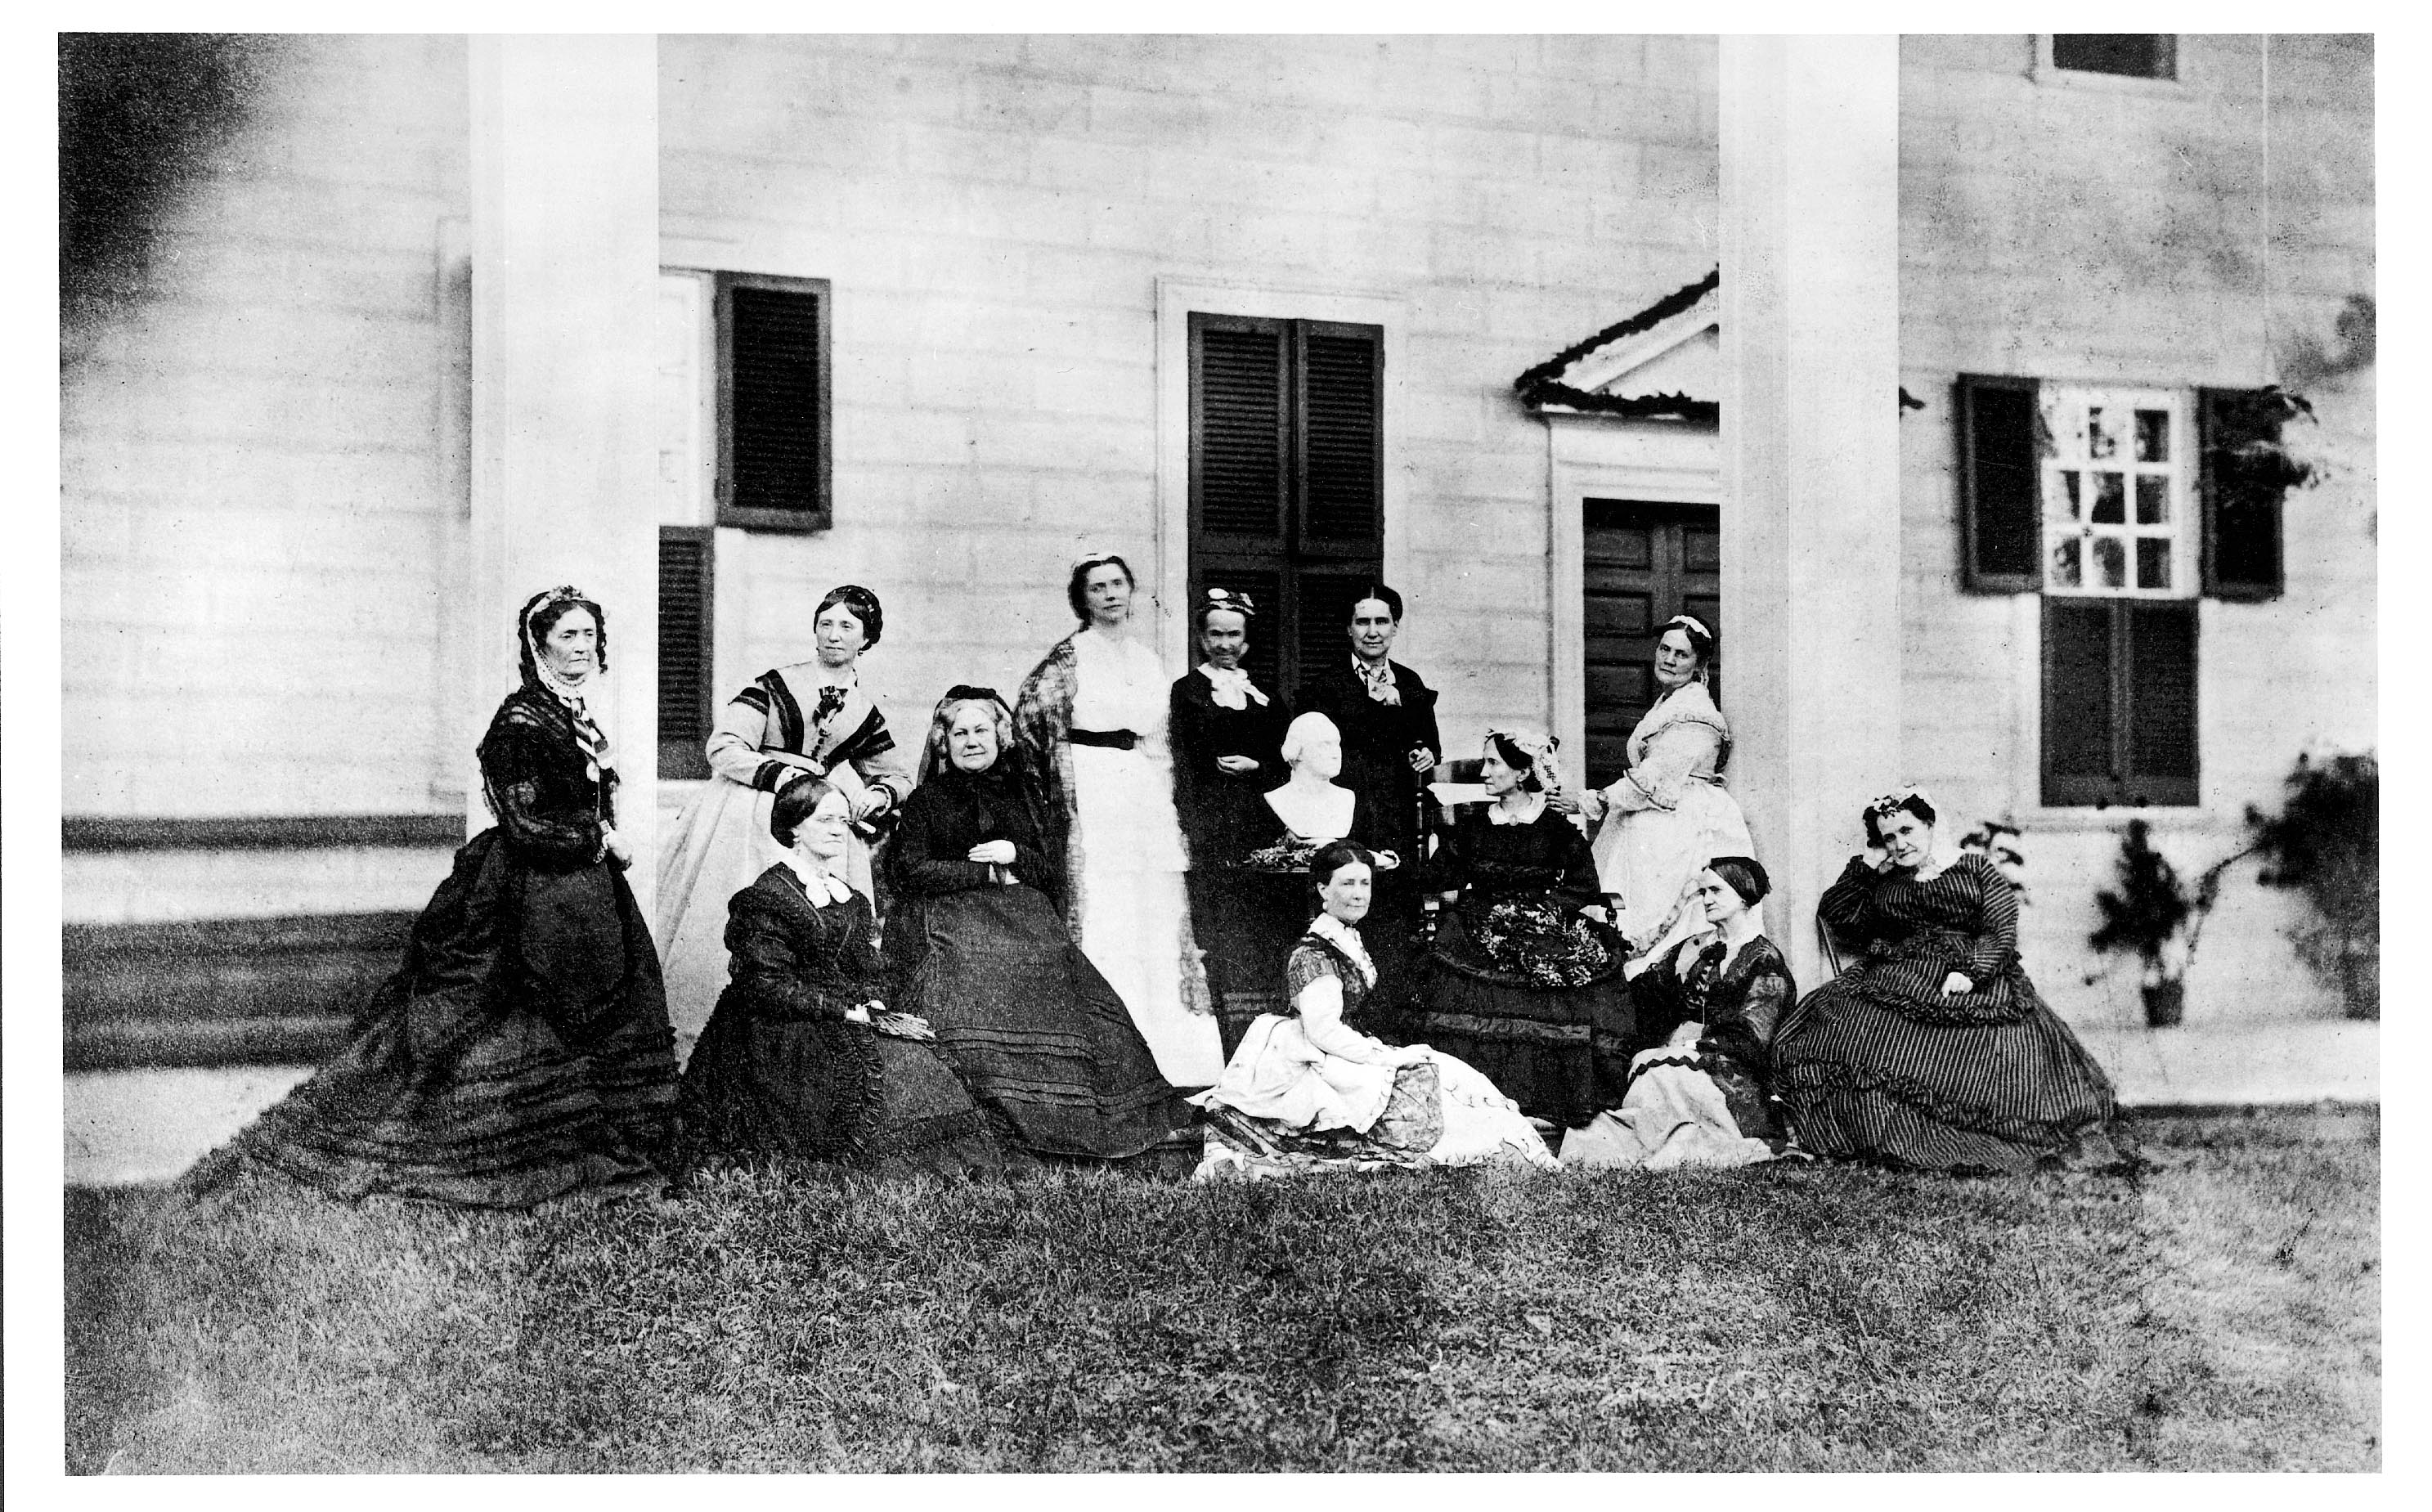 The Mount Vernon Ladies' Association was the first national historic preservation organization and is the oldest women's patriotic society in the United States.